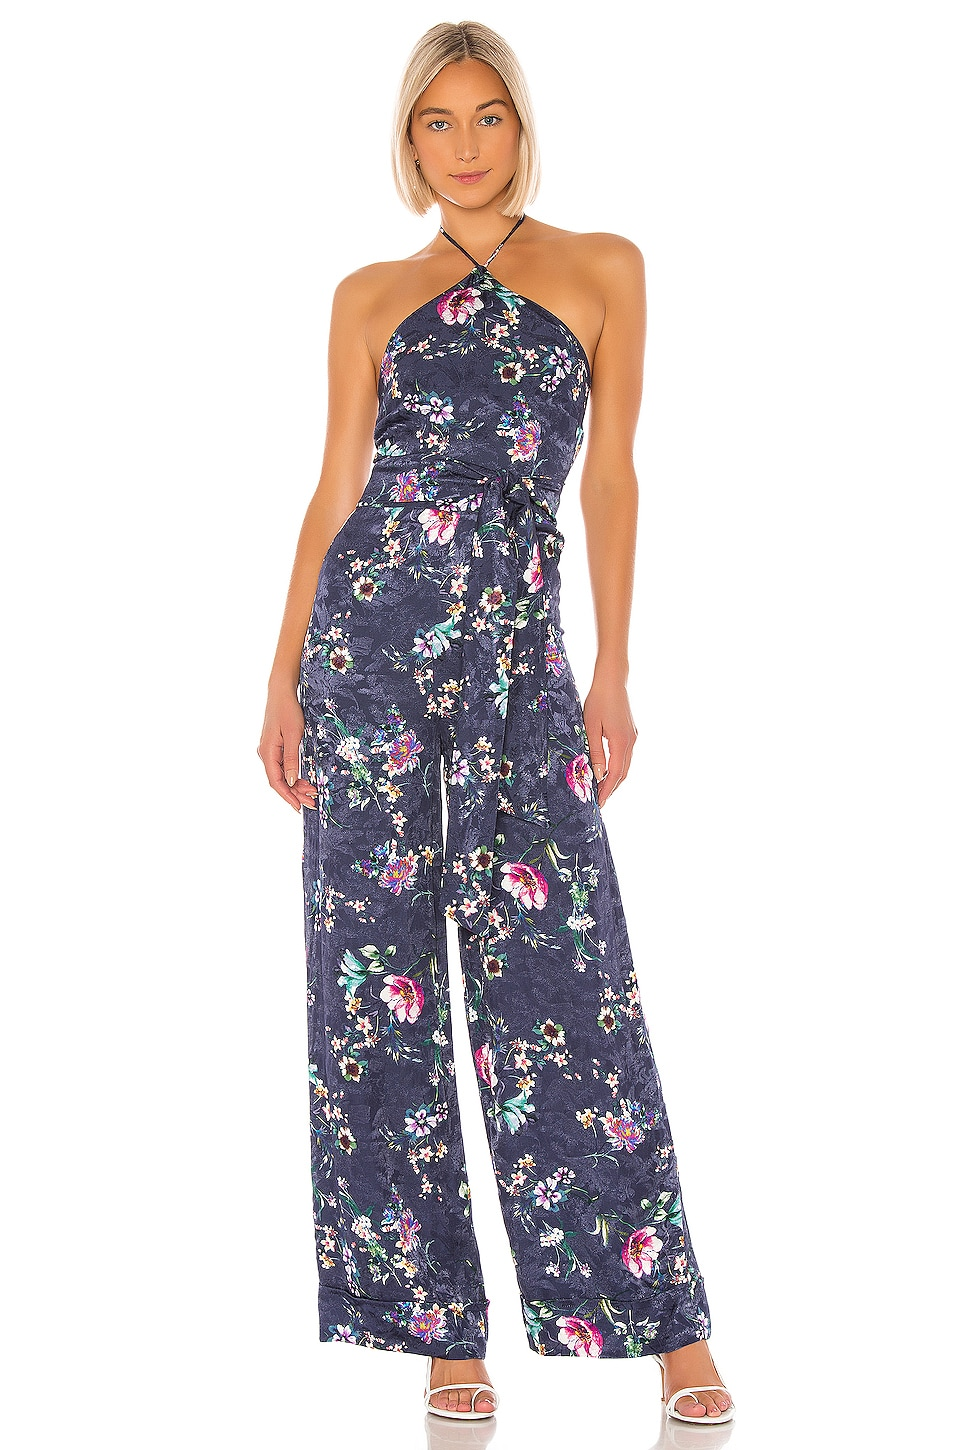 House of Harlow 1960 X REVOLVE Mclain Jumpsuit in Navy Floral Multi